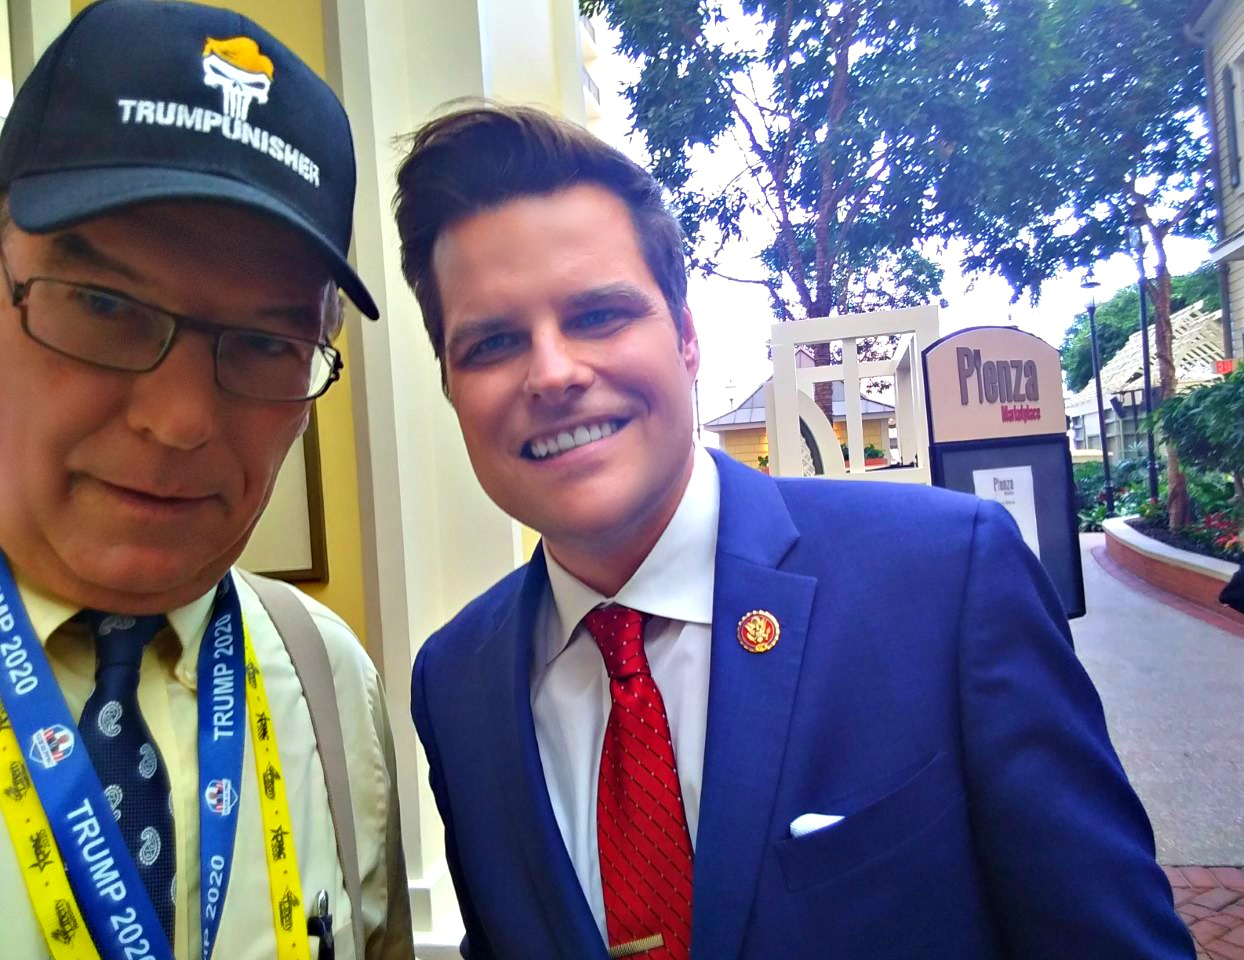 JJ Flash with Matt Gaetz